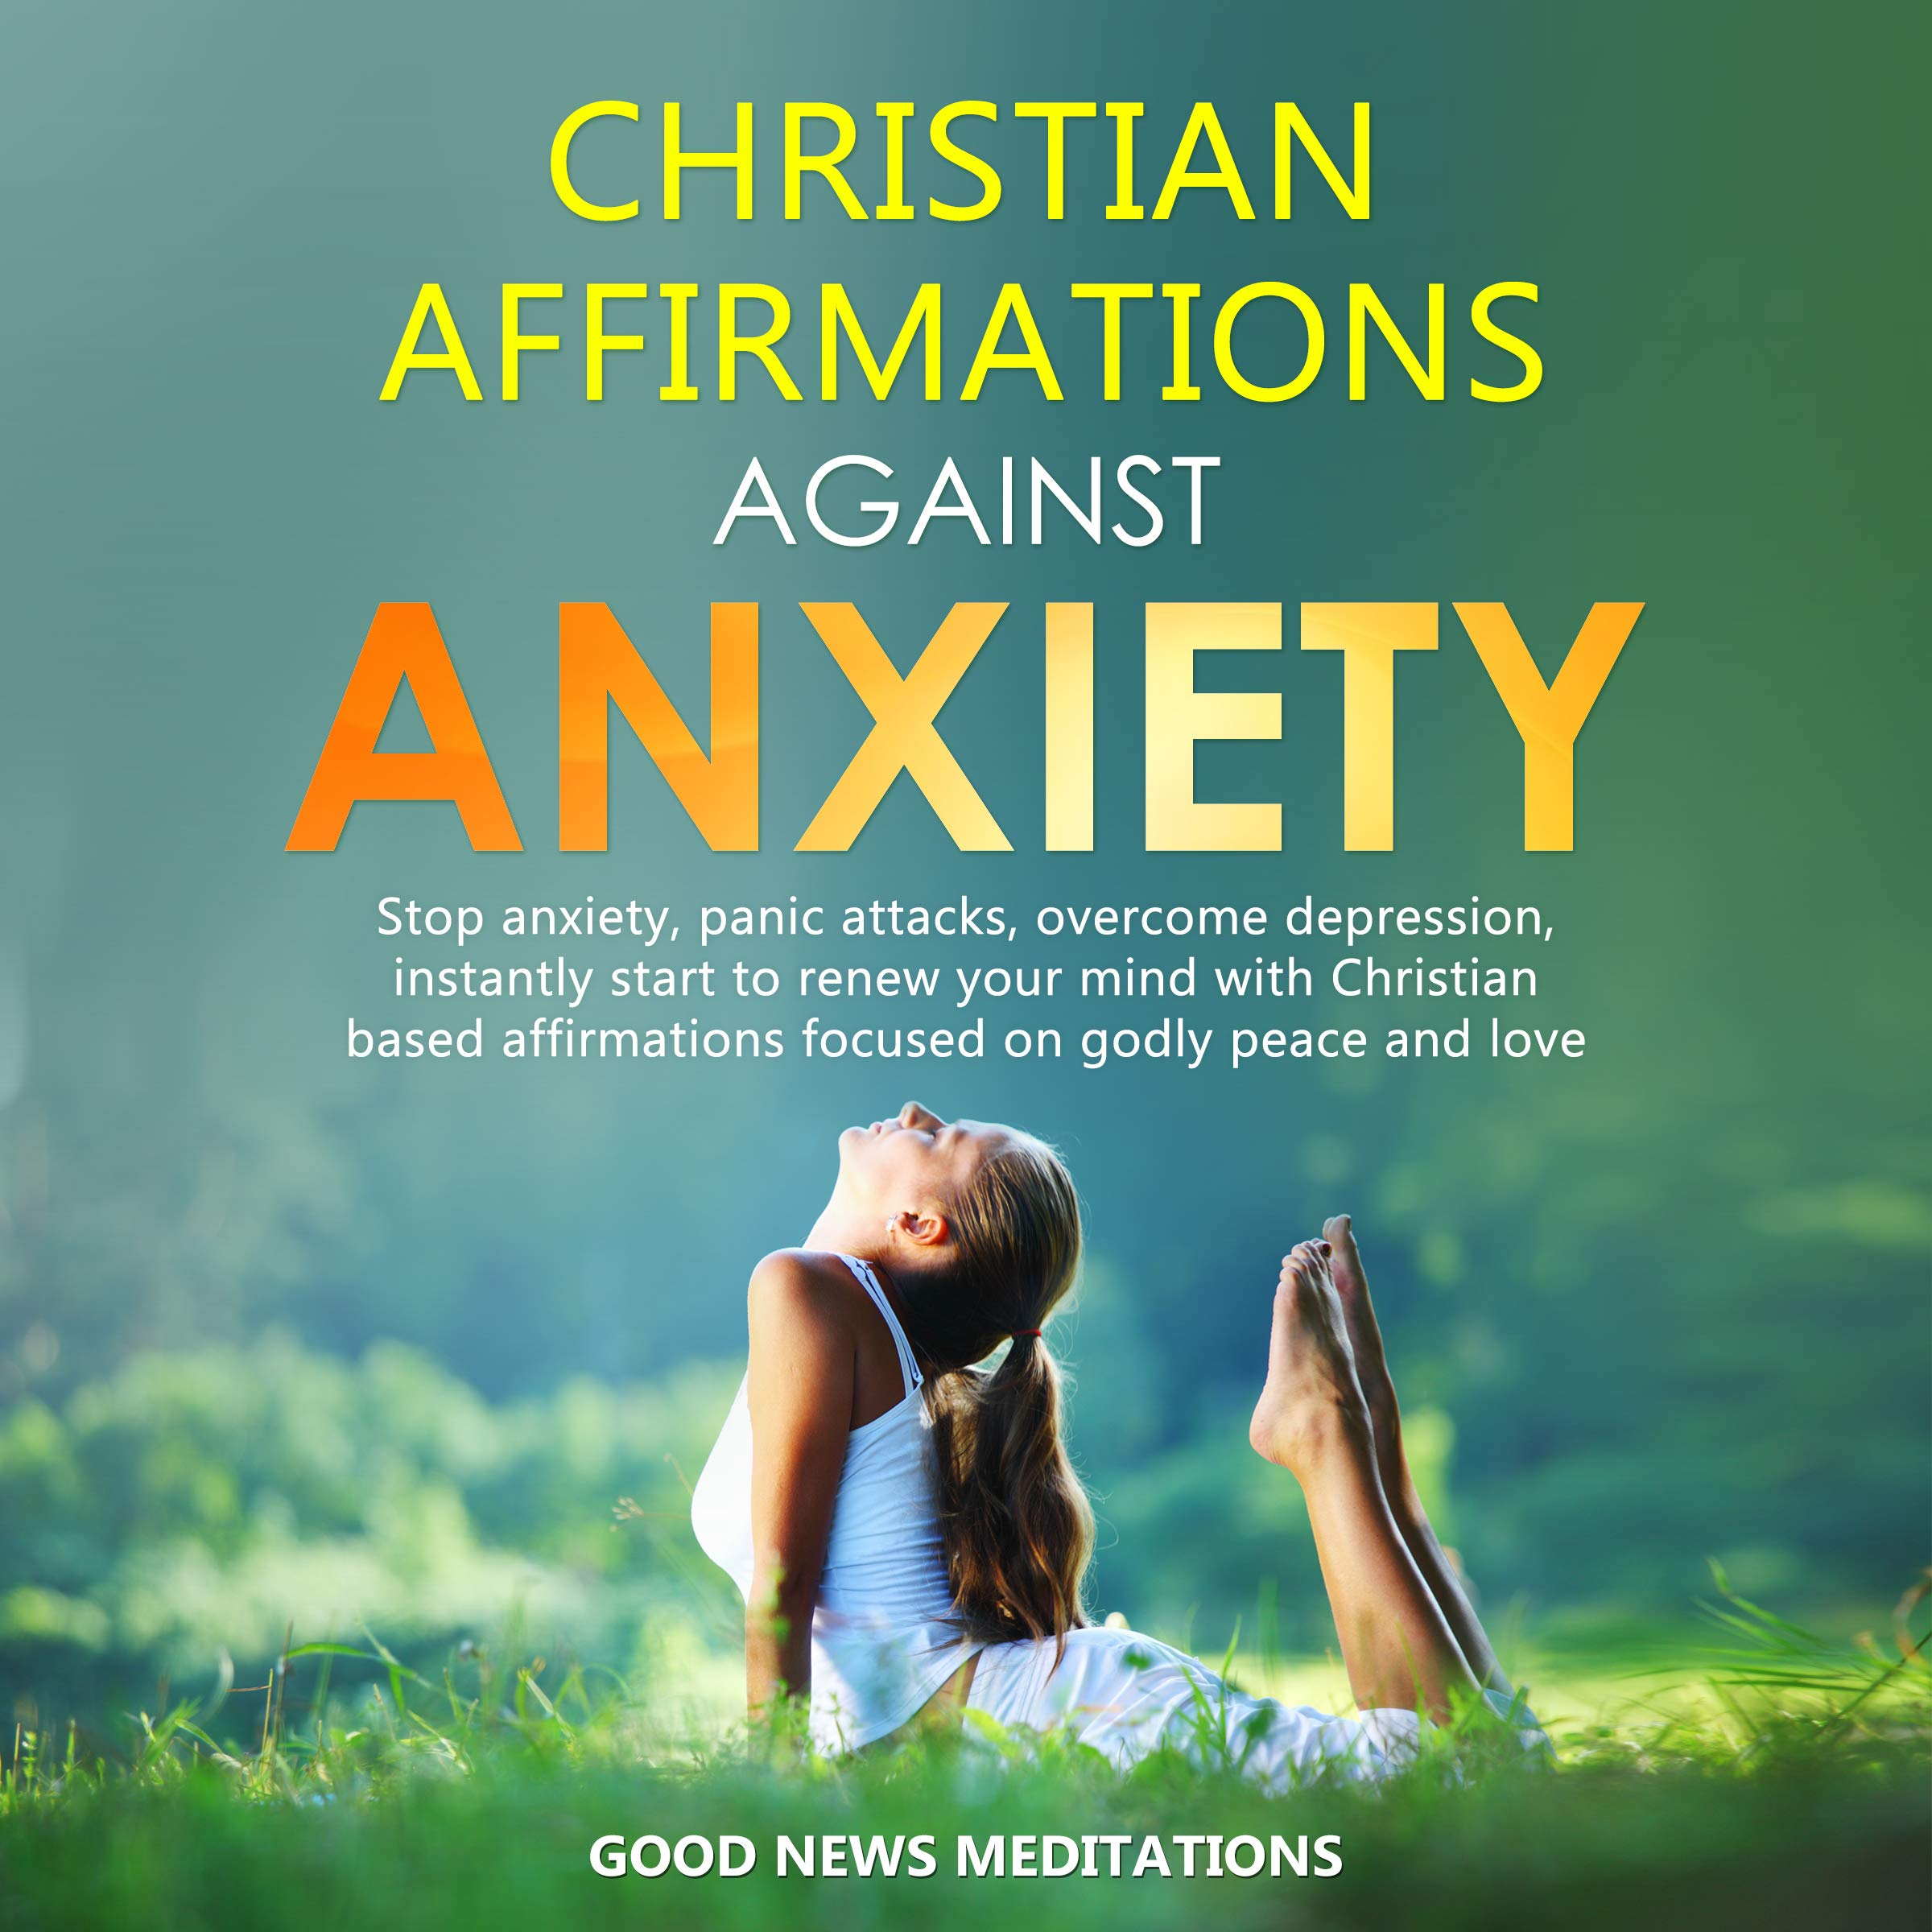 Christian Affirmations against Anxiety: Stop anxiety, panic attacks, overcome depression, instantly start to renew your mind with Christian based affirmations focused on godly peace and love